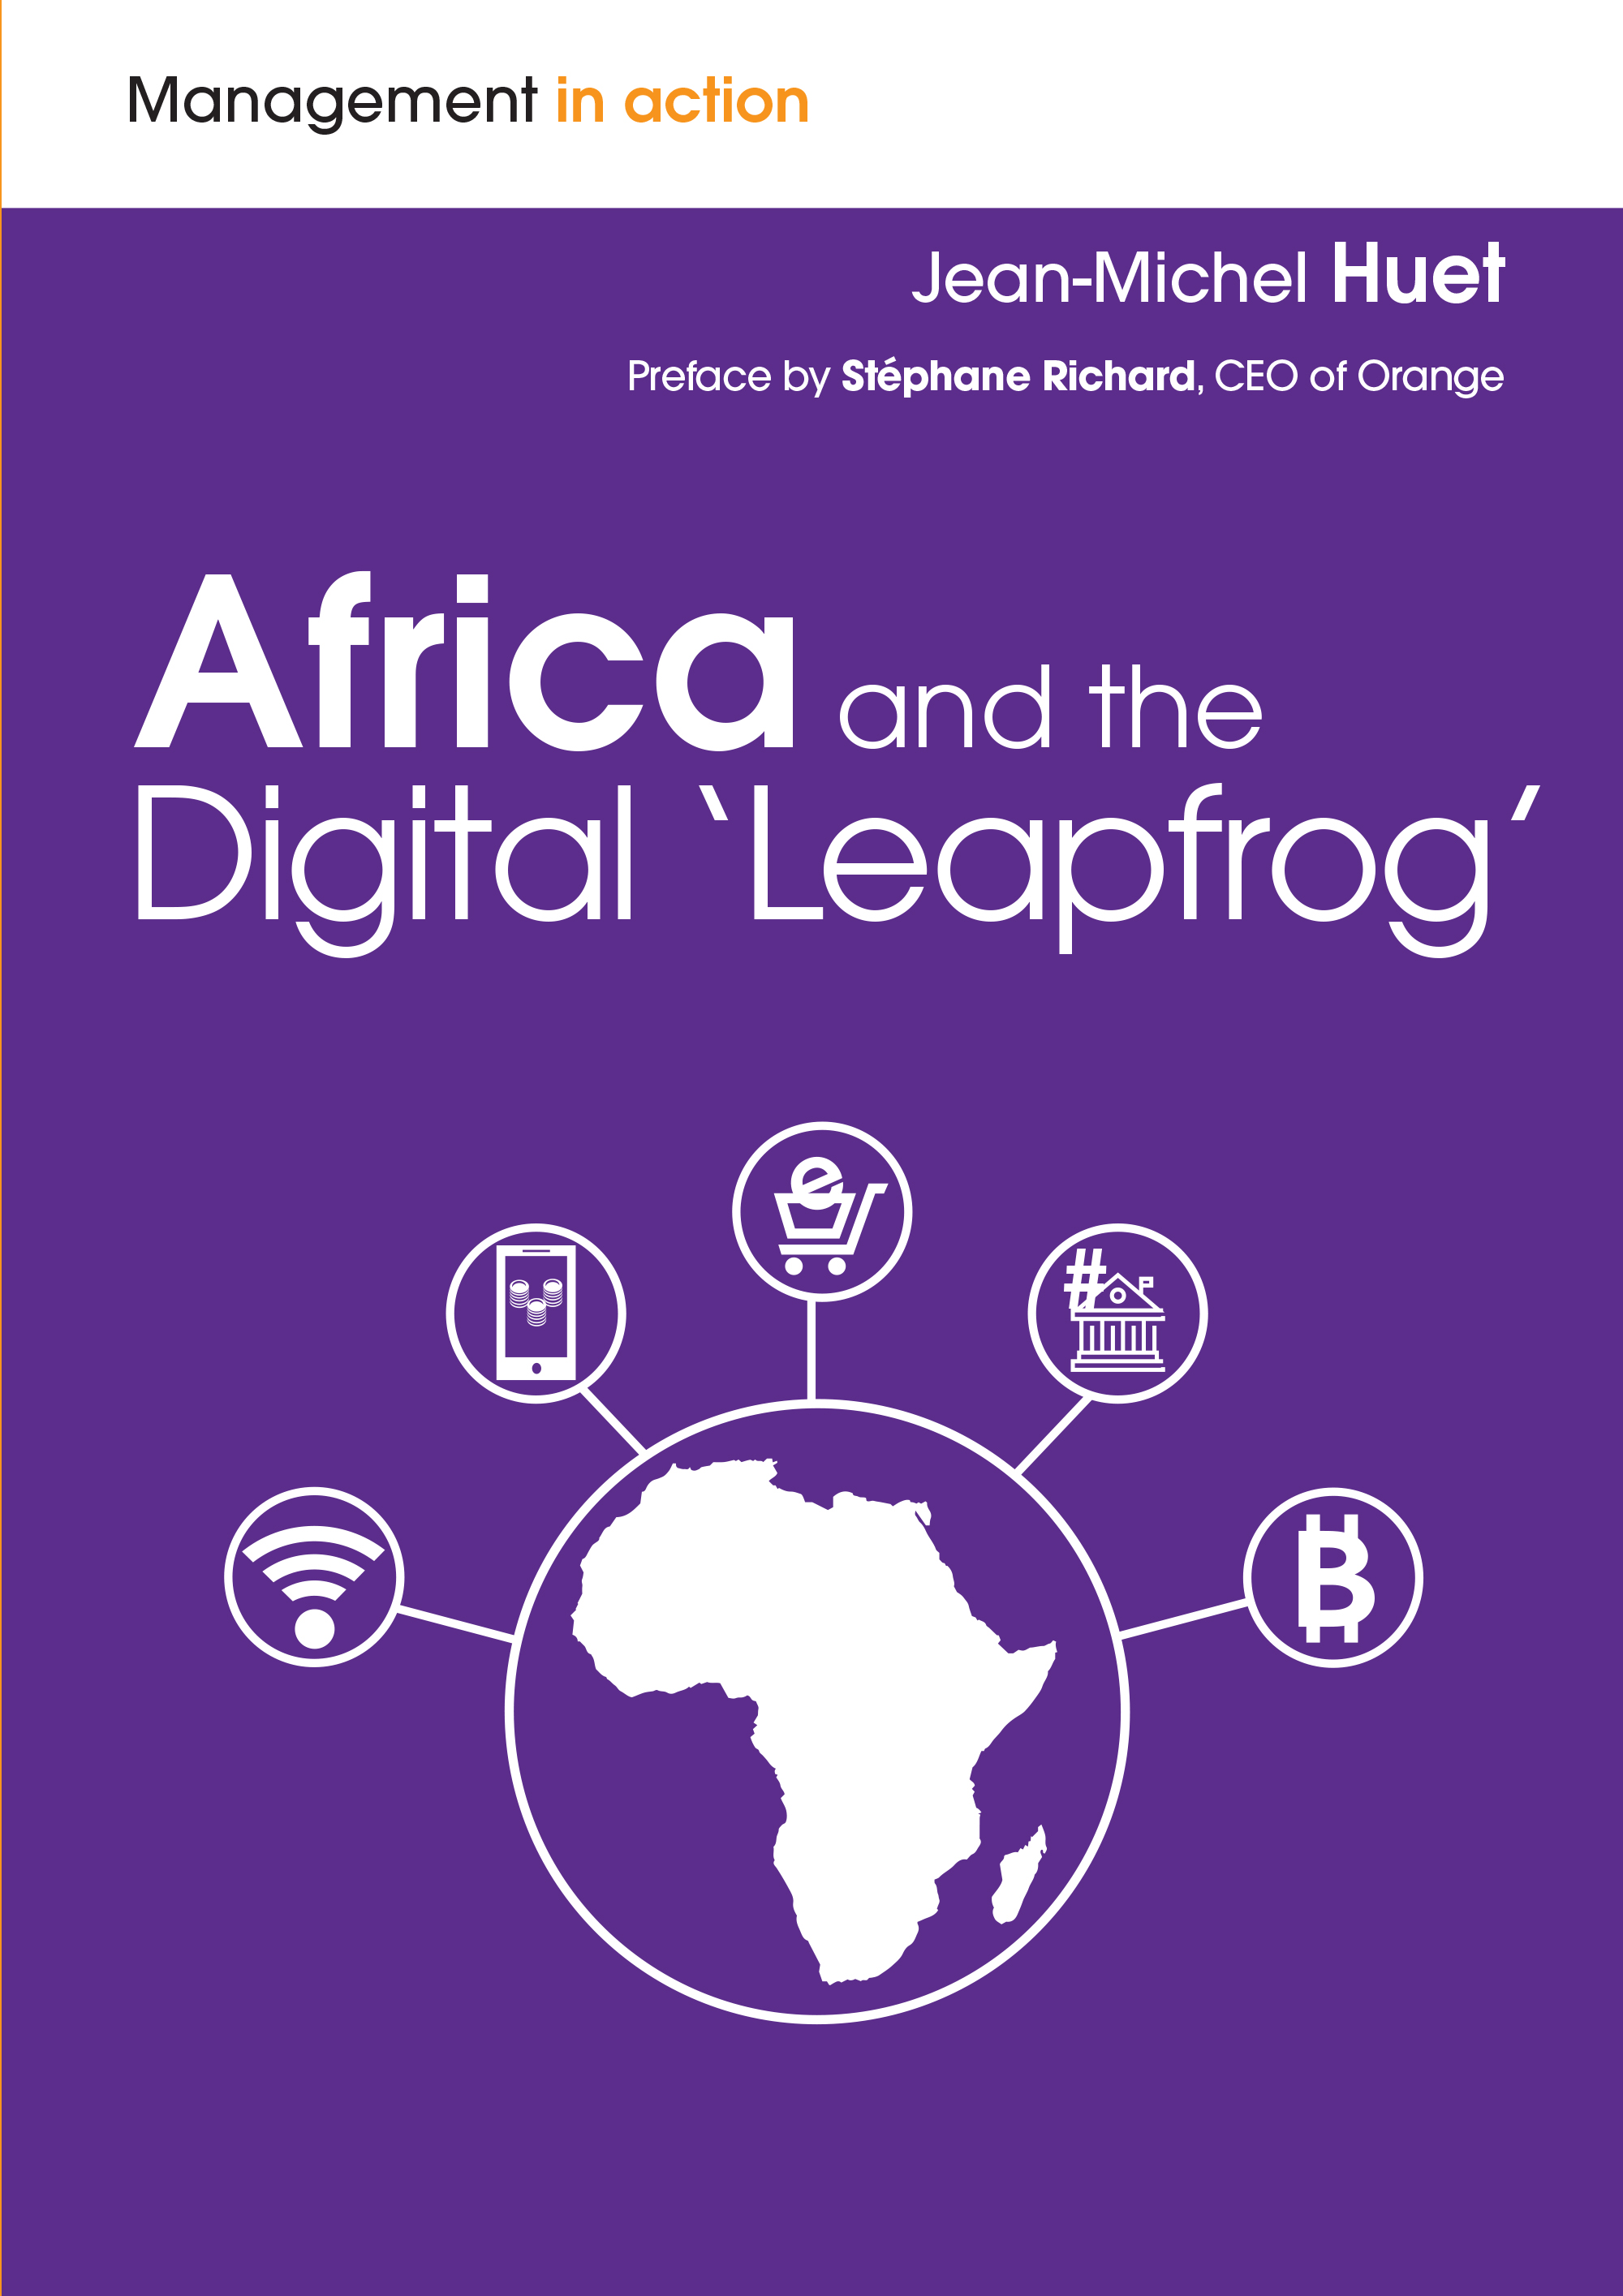 Africa and the Digital 'Leapfrog' De Jean-Michel Huet - Pearson